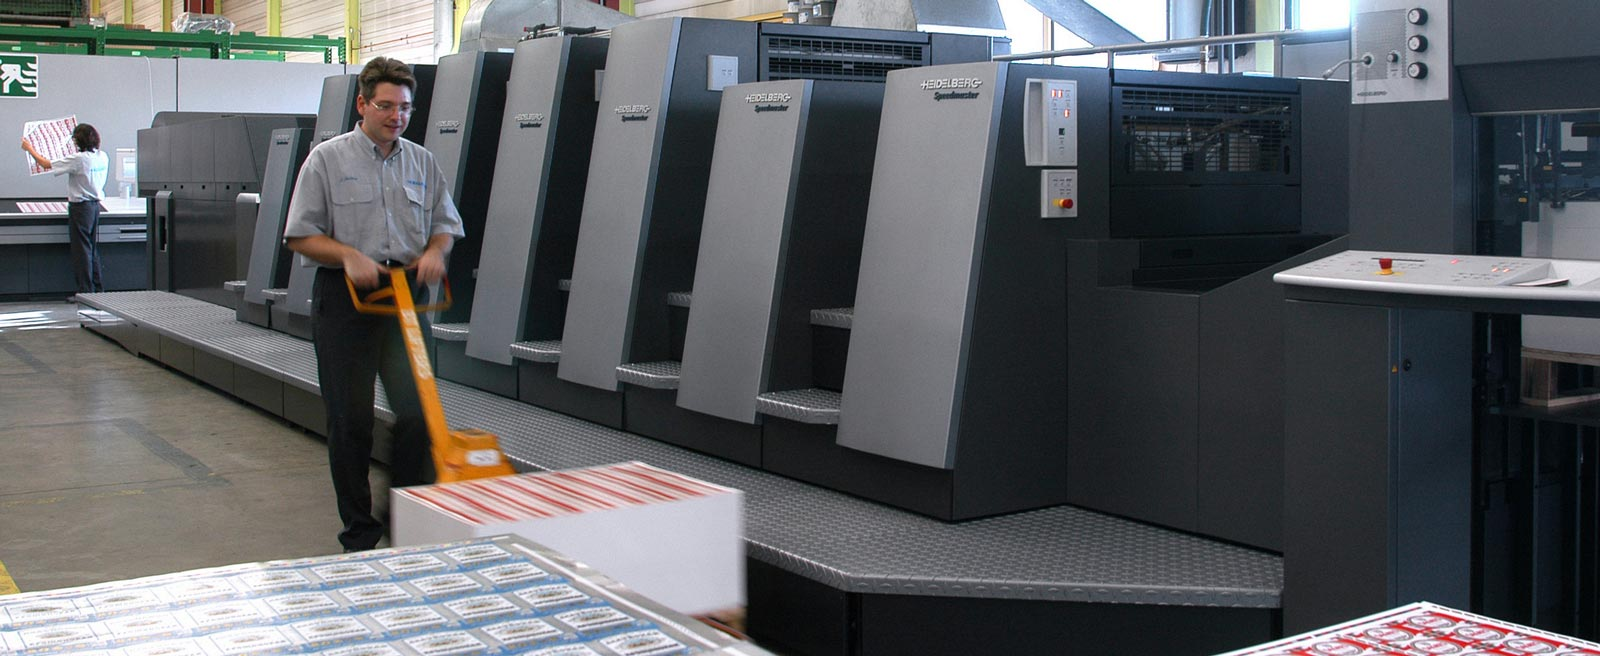 Sheet-Fed Offset Printing | OneSource Print Solutions, Inc